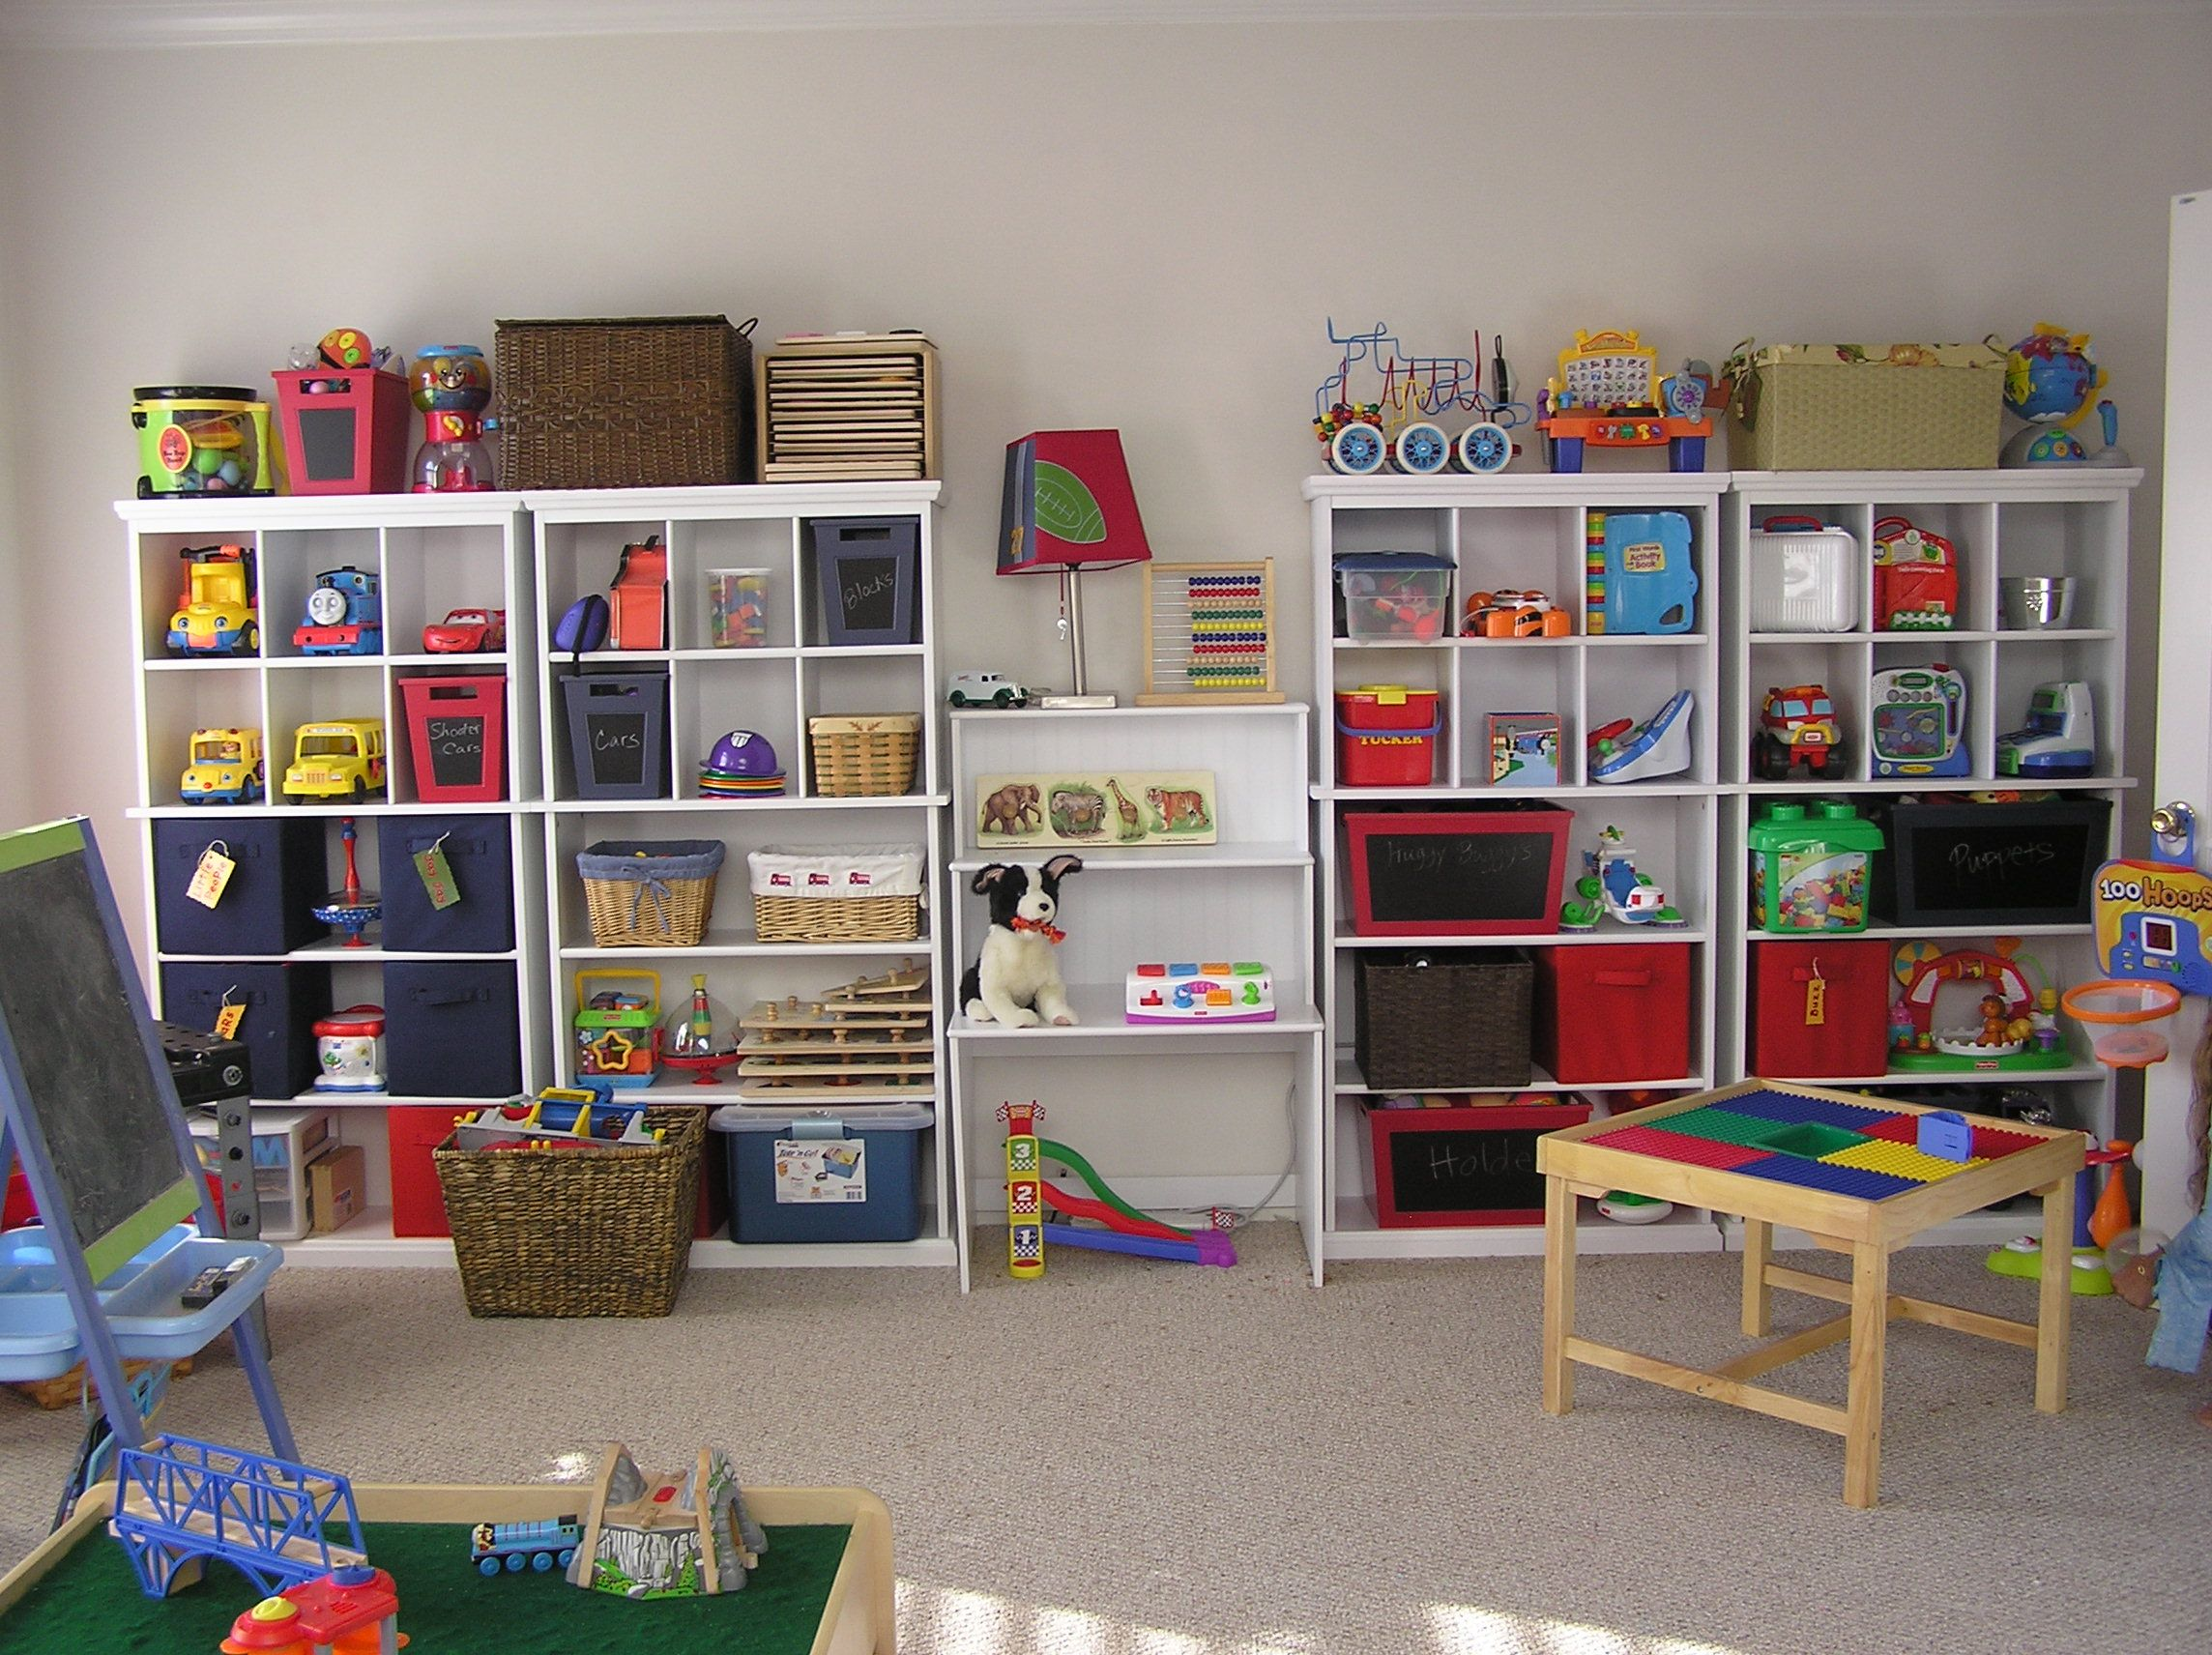 kids room organization ideas | Organizing Kids ToysAmy Volk - Live ...